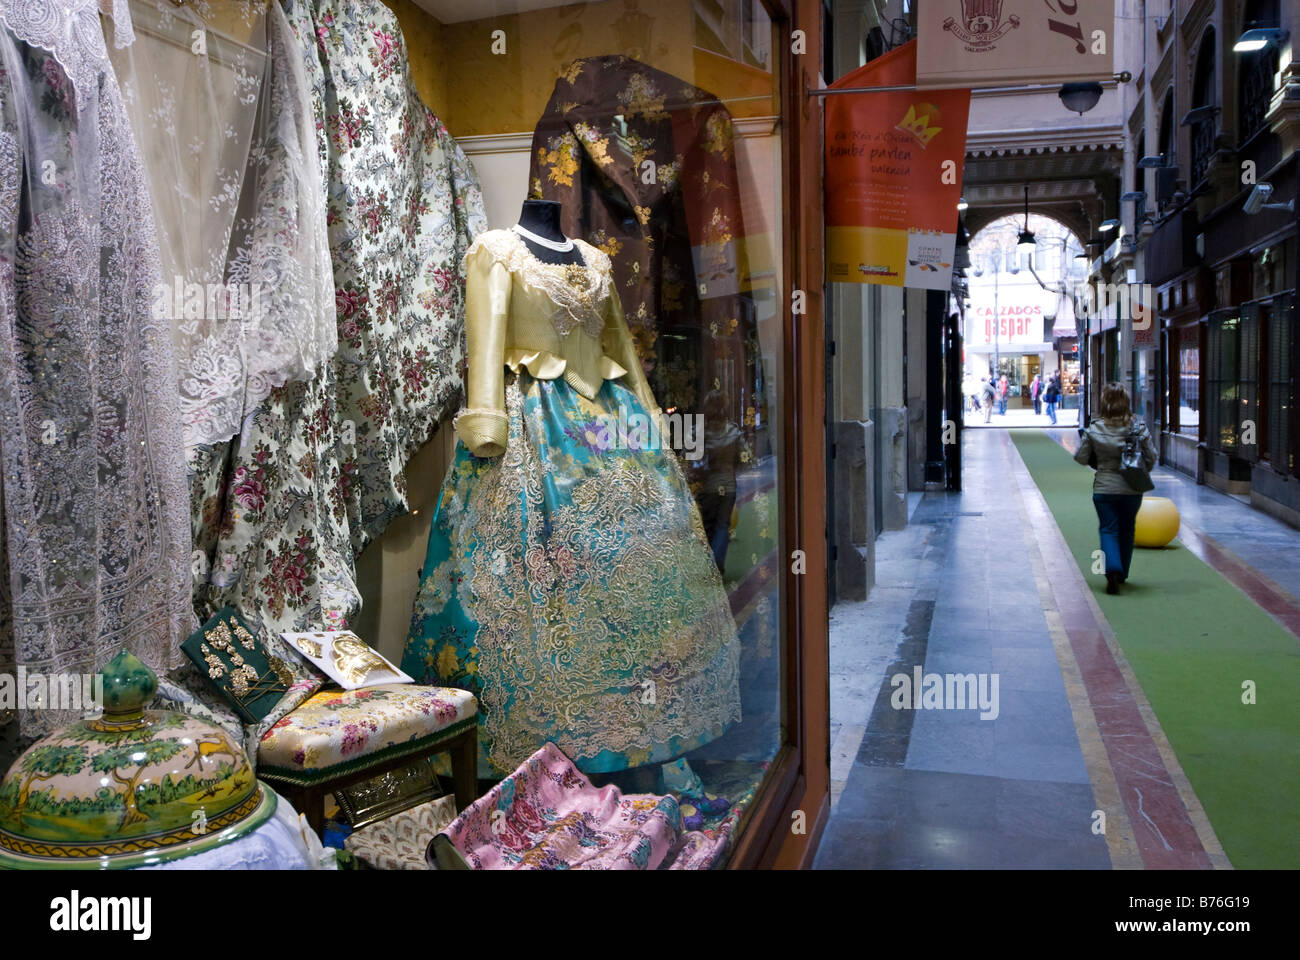 Spanish Dress Shop